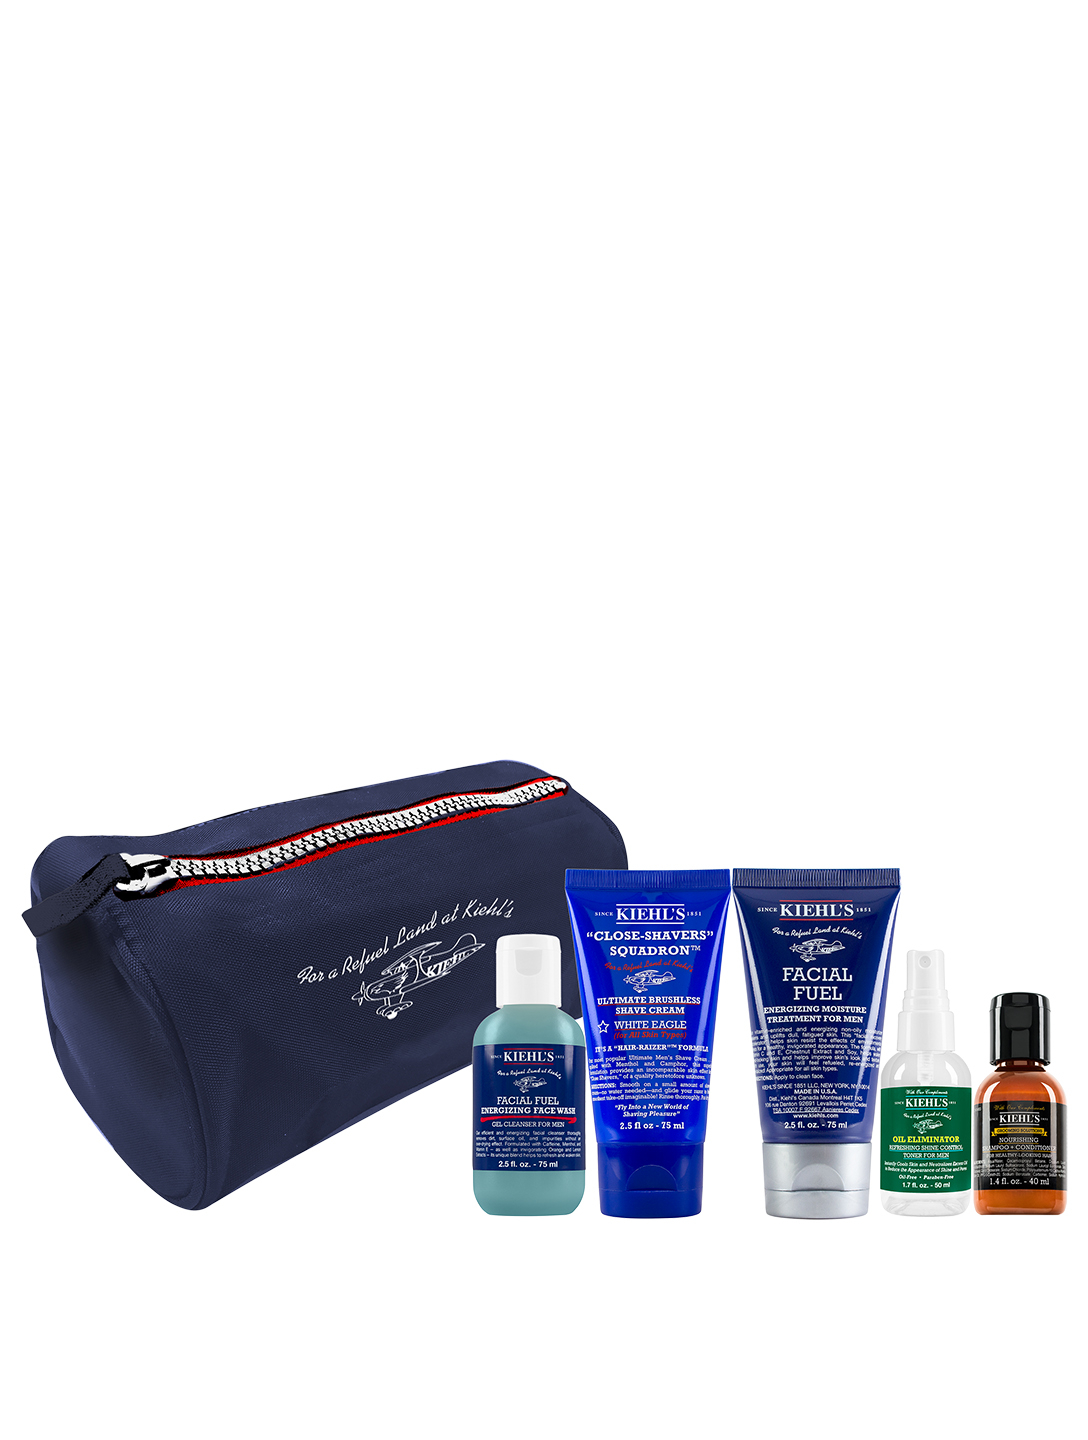 KIEHL'S Men's Travel Set Beauty